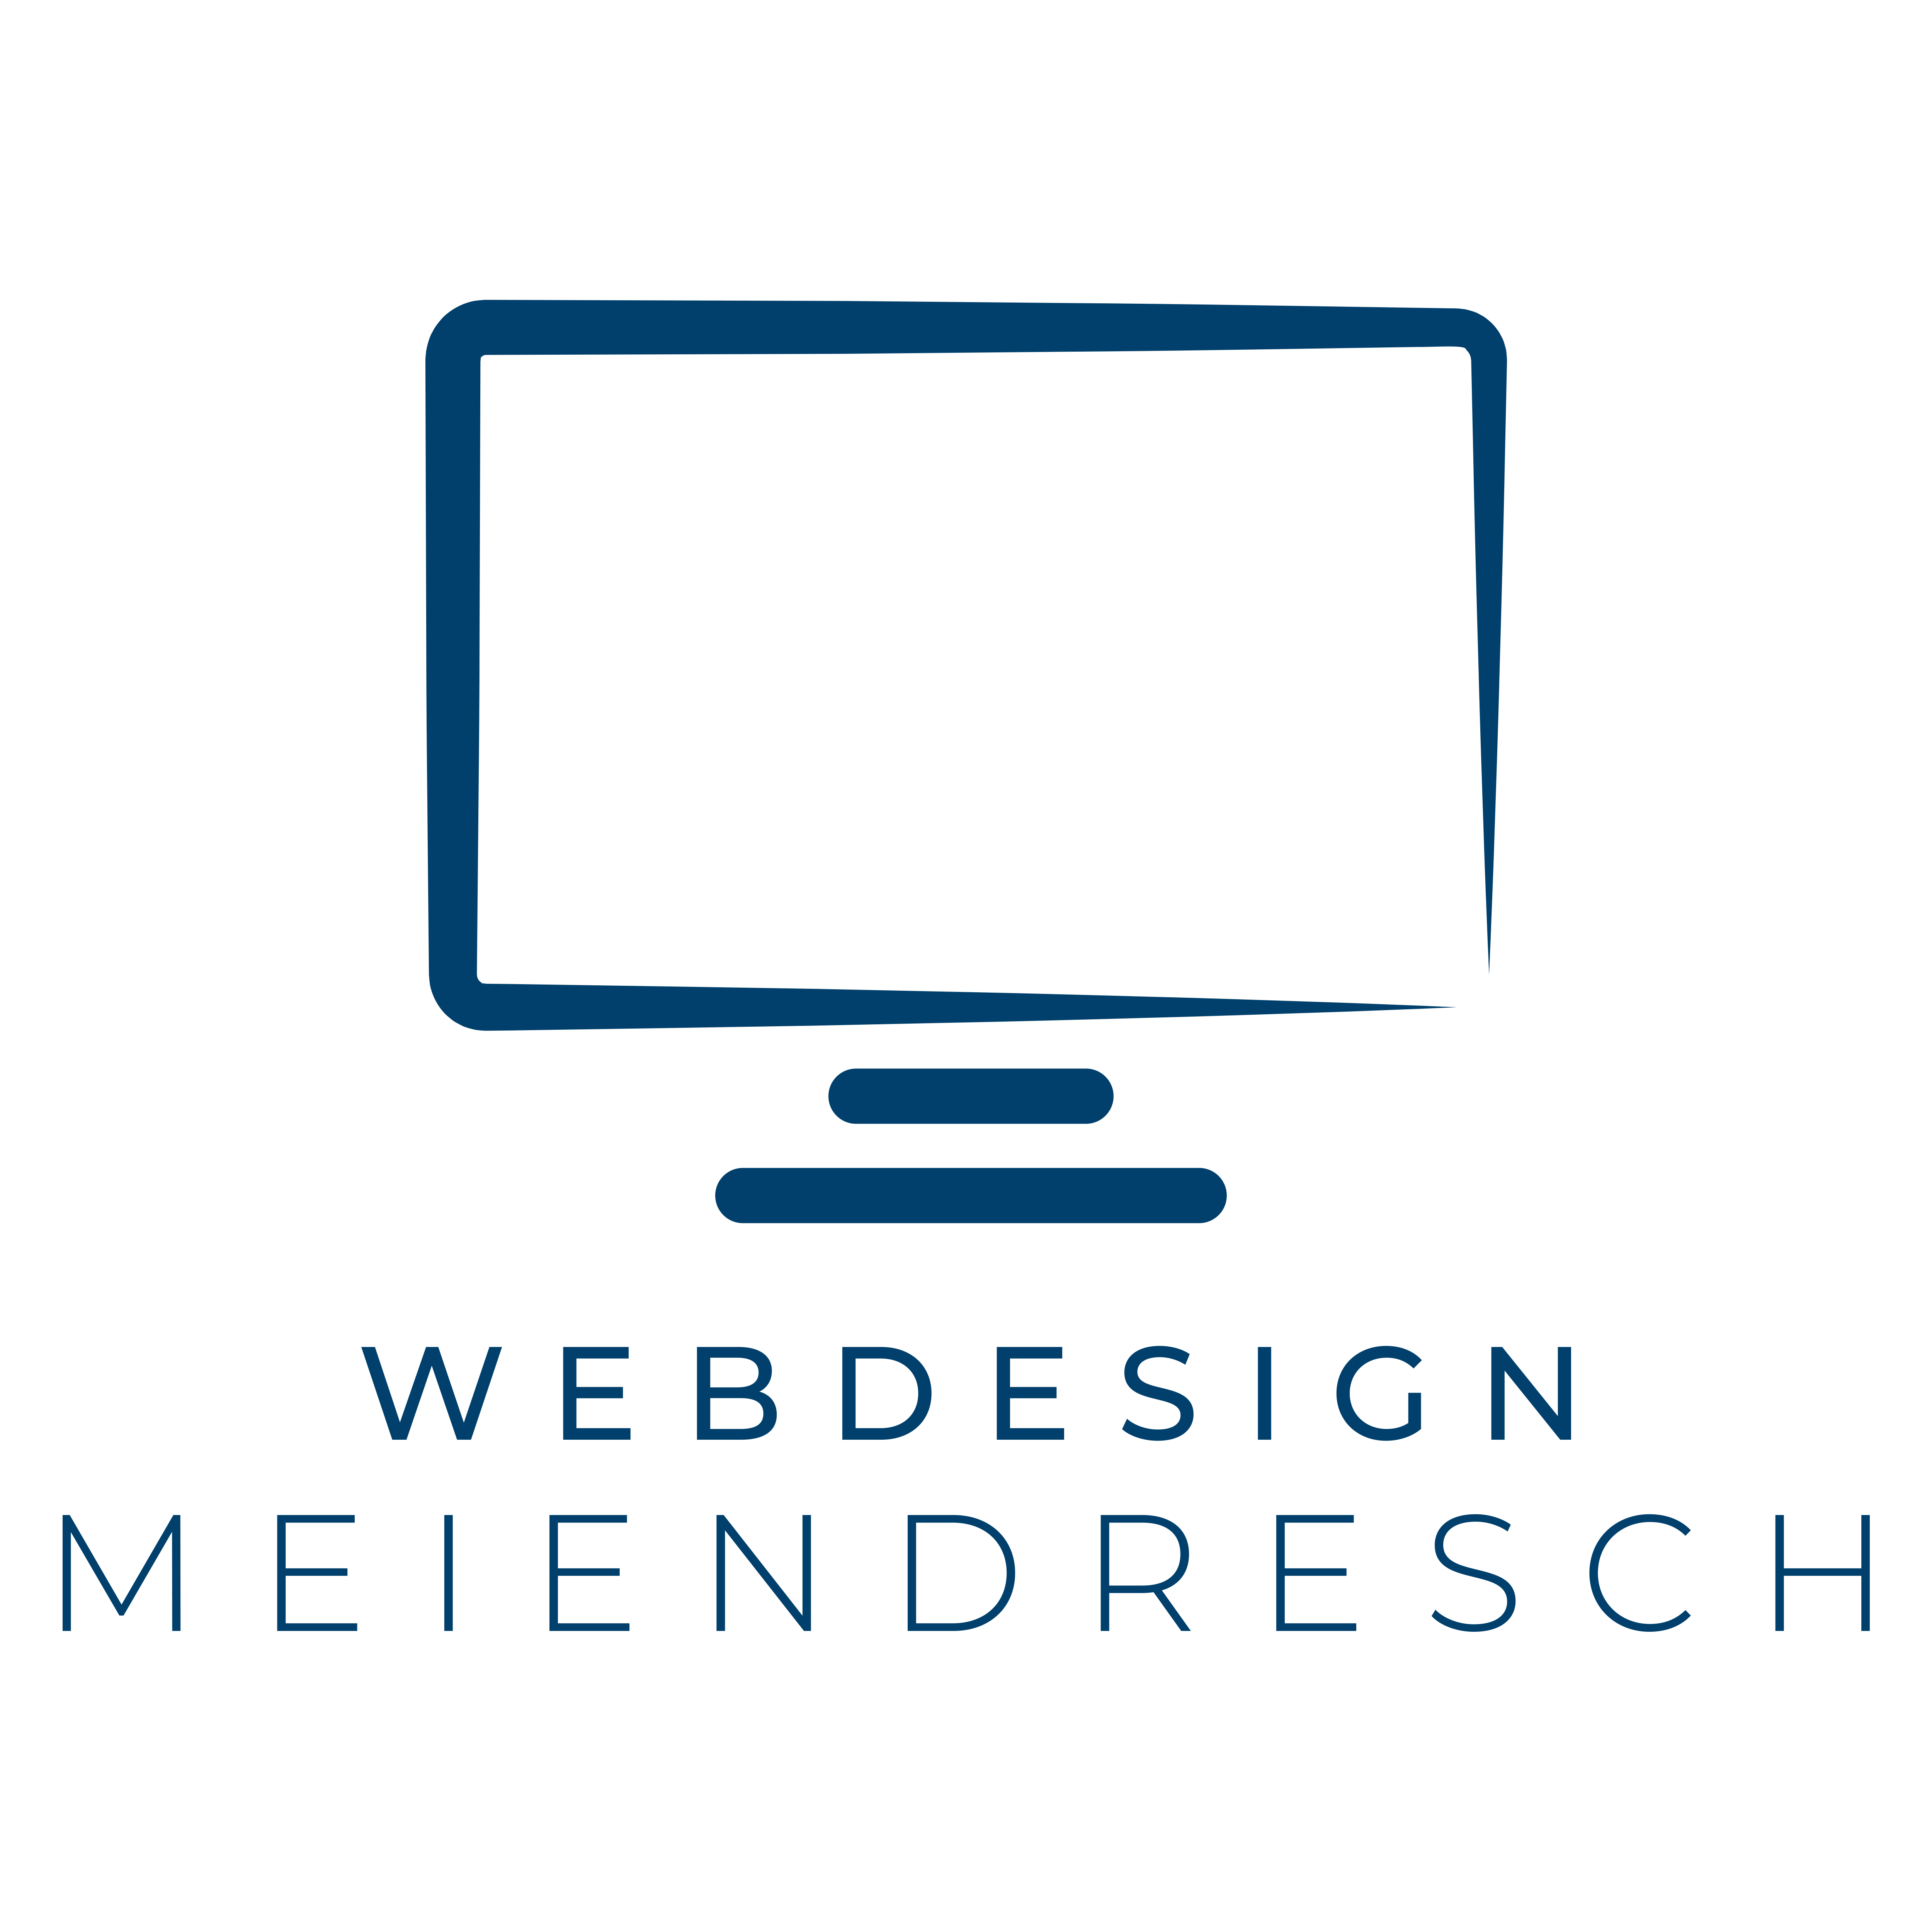 Webdesign Meiendresch